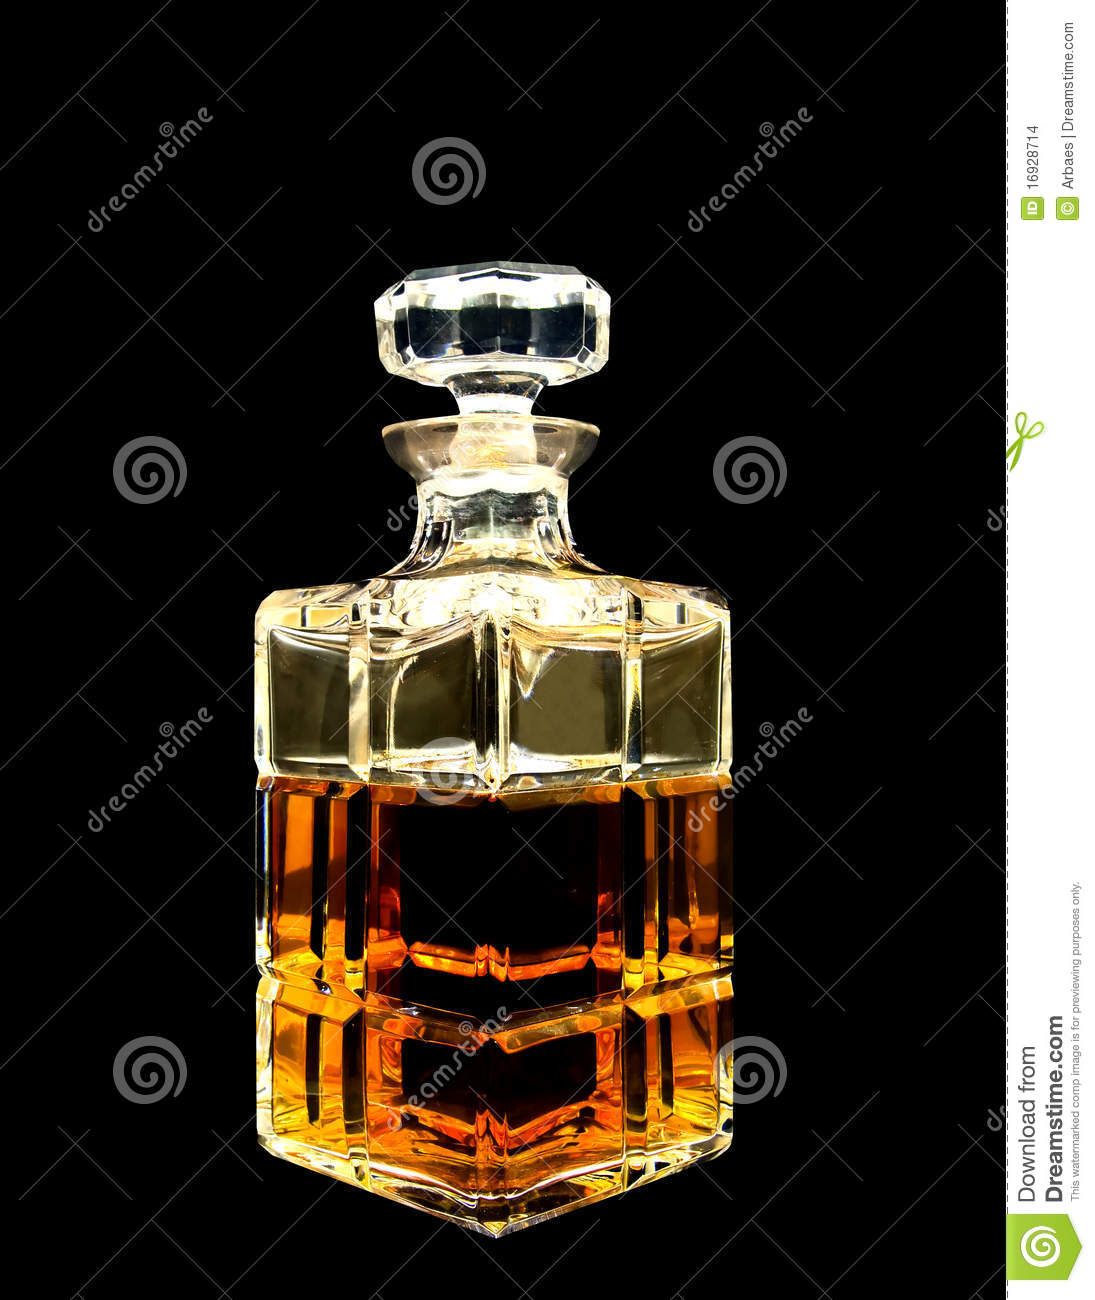 a crystal decanter with whiskey stock photo image 16928714. Black Bedroom Furniture Sets. Home Design Ideas